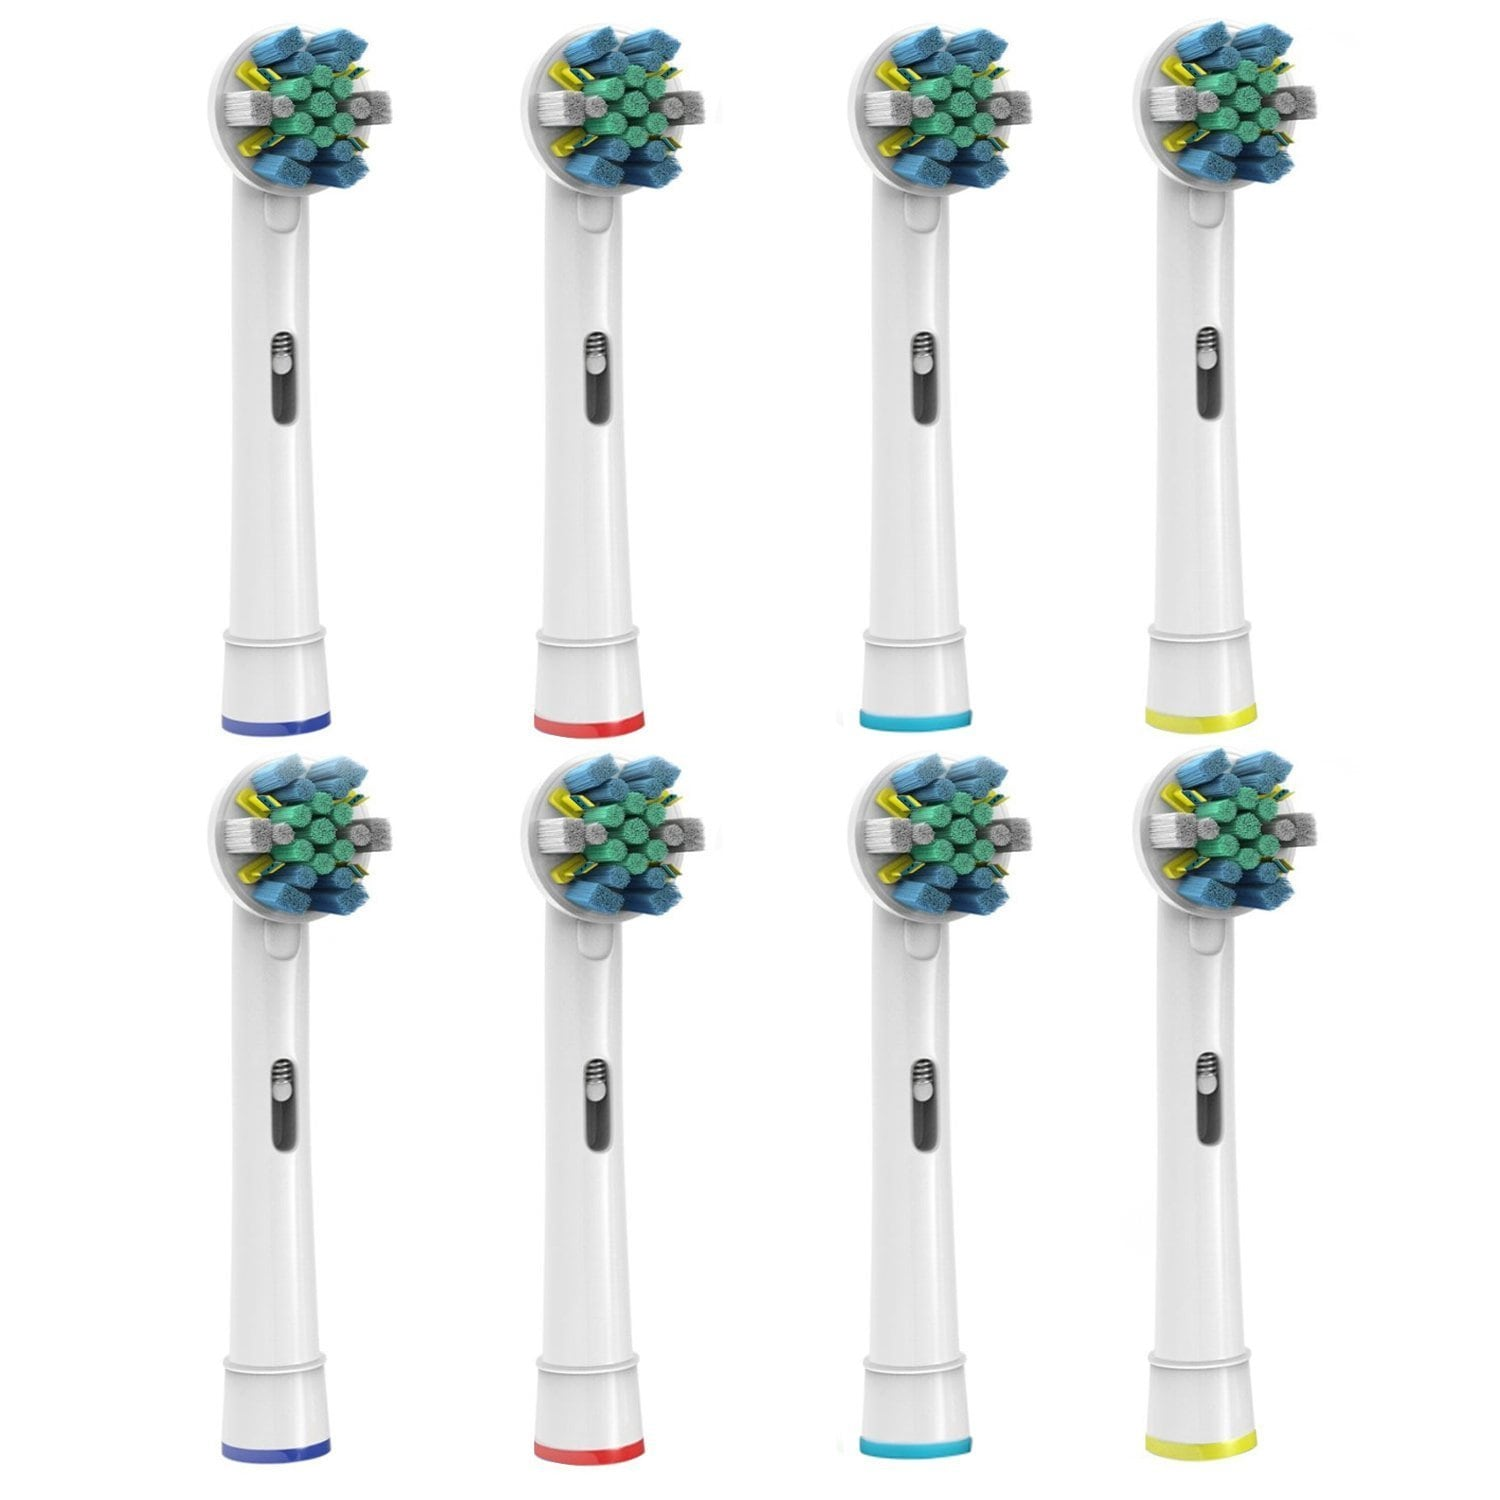 Pursonic Premium Floss Action Replacement Toothbrush Heads for Oral B (Pack of 8)